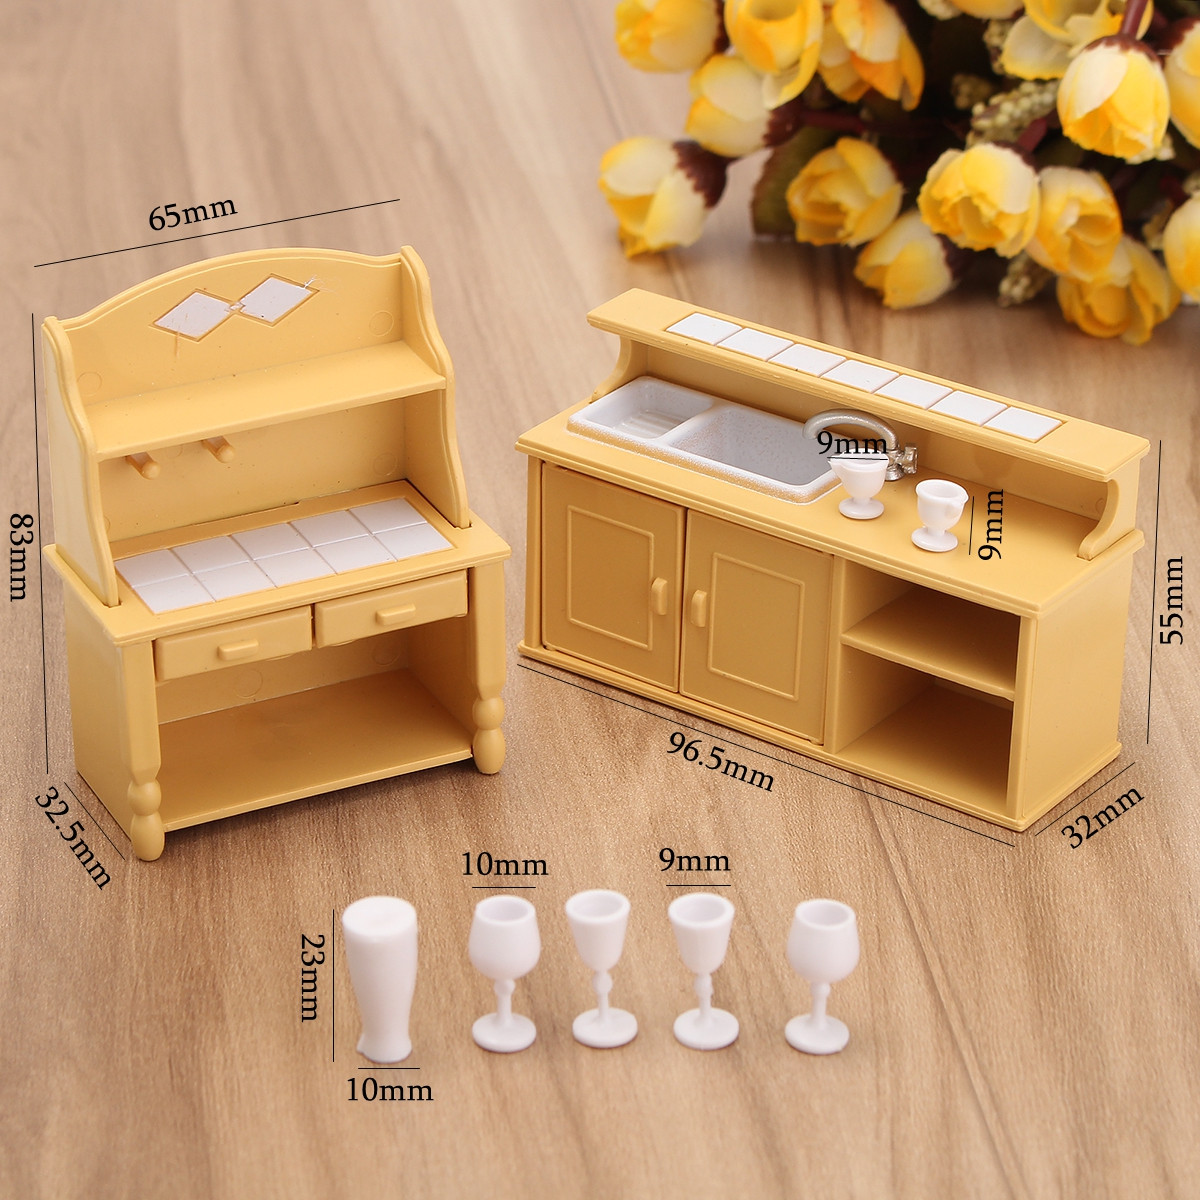 Plastic Kitchen Miniature Doll House Accessories Furniture Dining Set Room Kids Toy